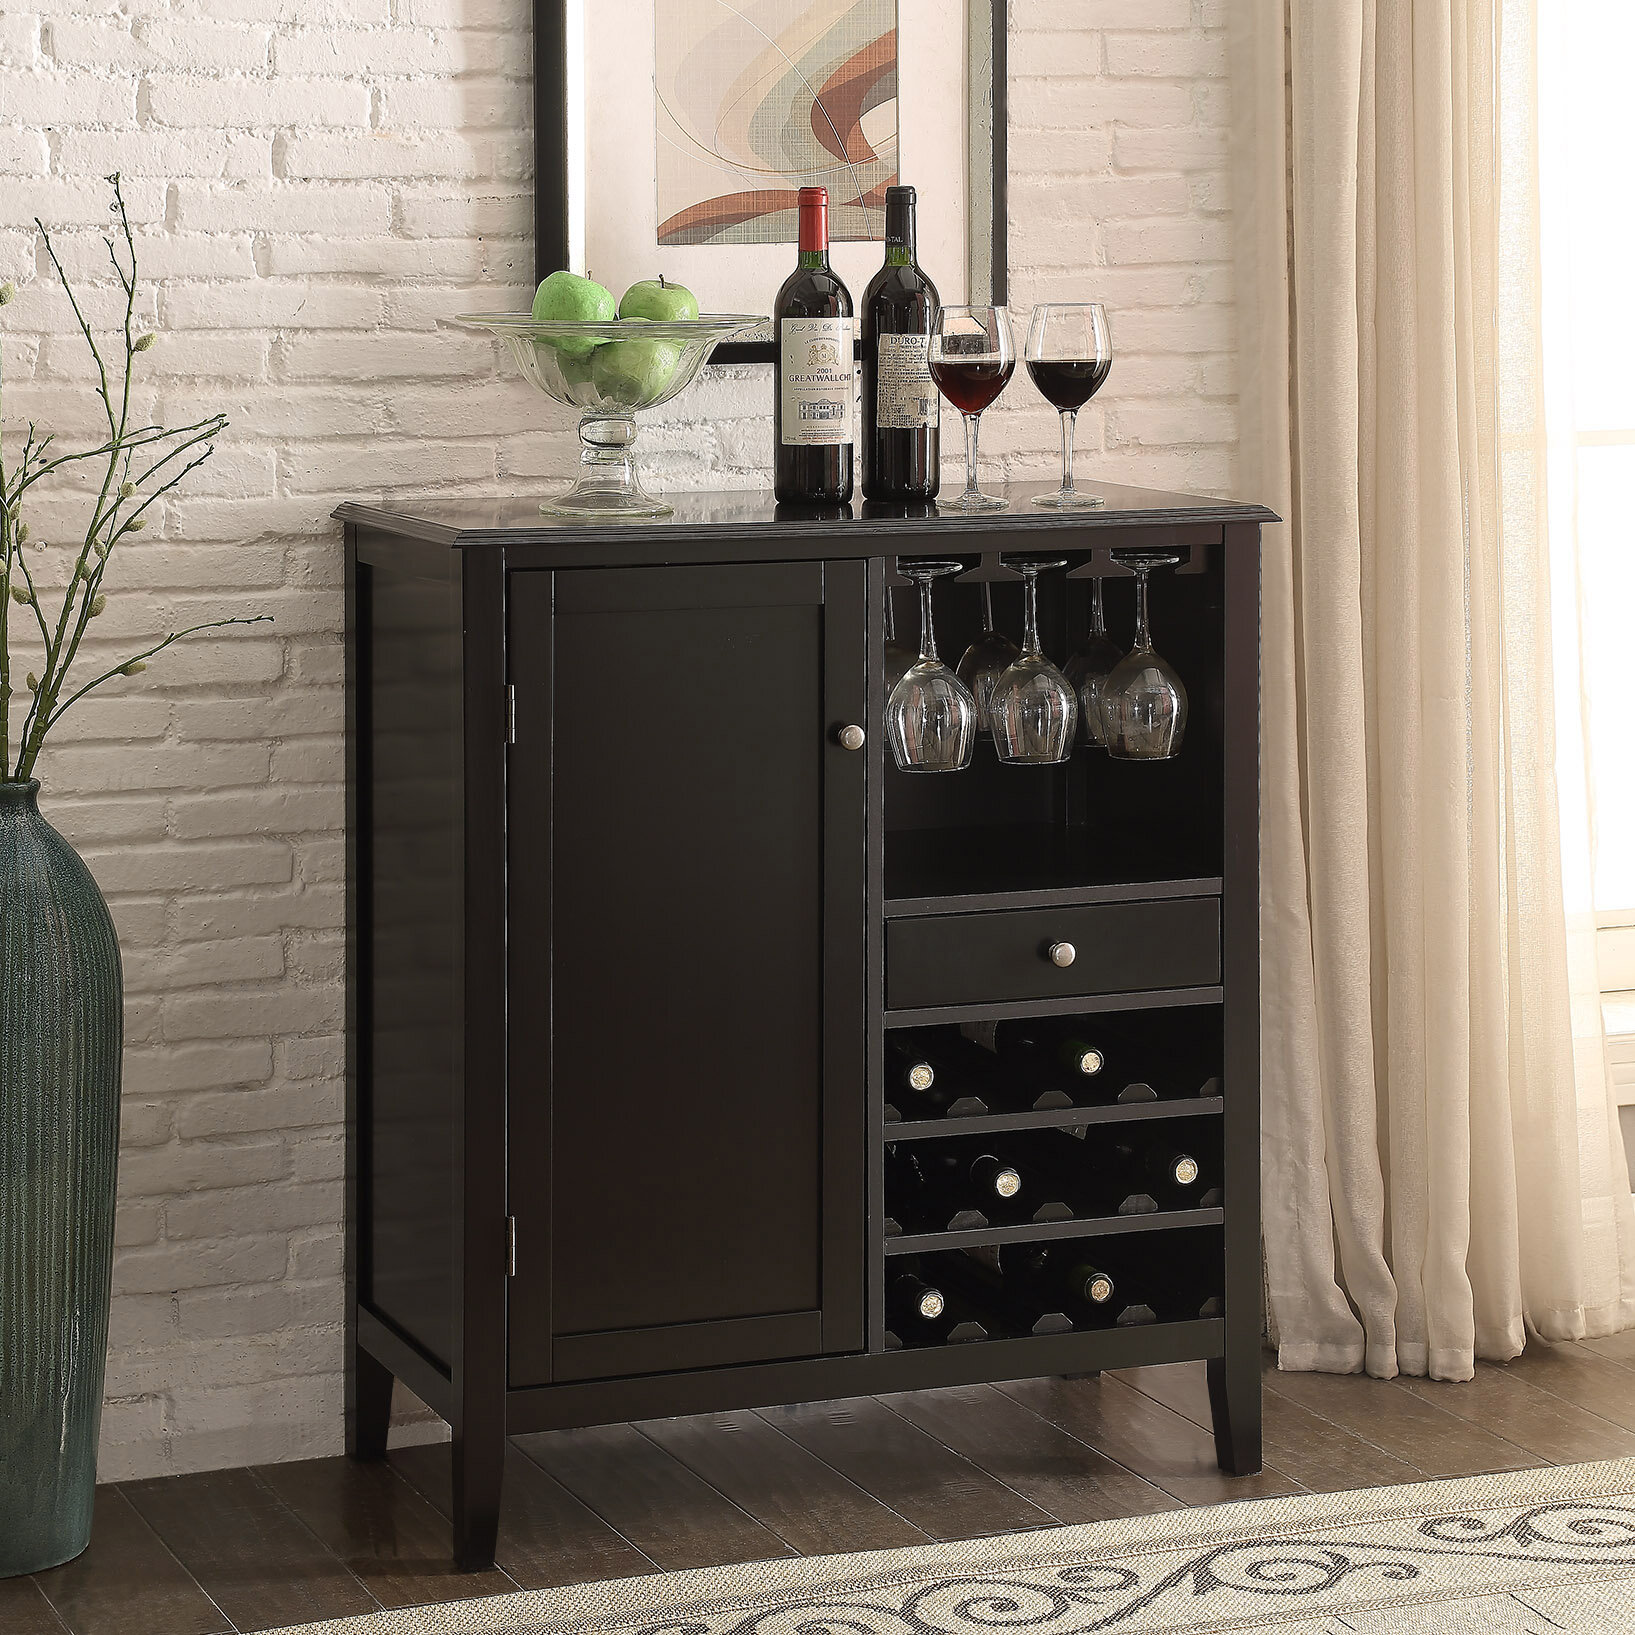 Homestyle Collection Cabernet 12 Bottle Floor Wine Cabinet U0026 Reviews |  Wayfair